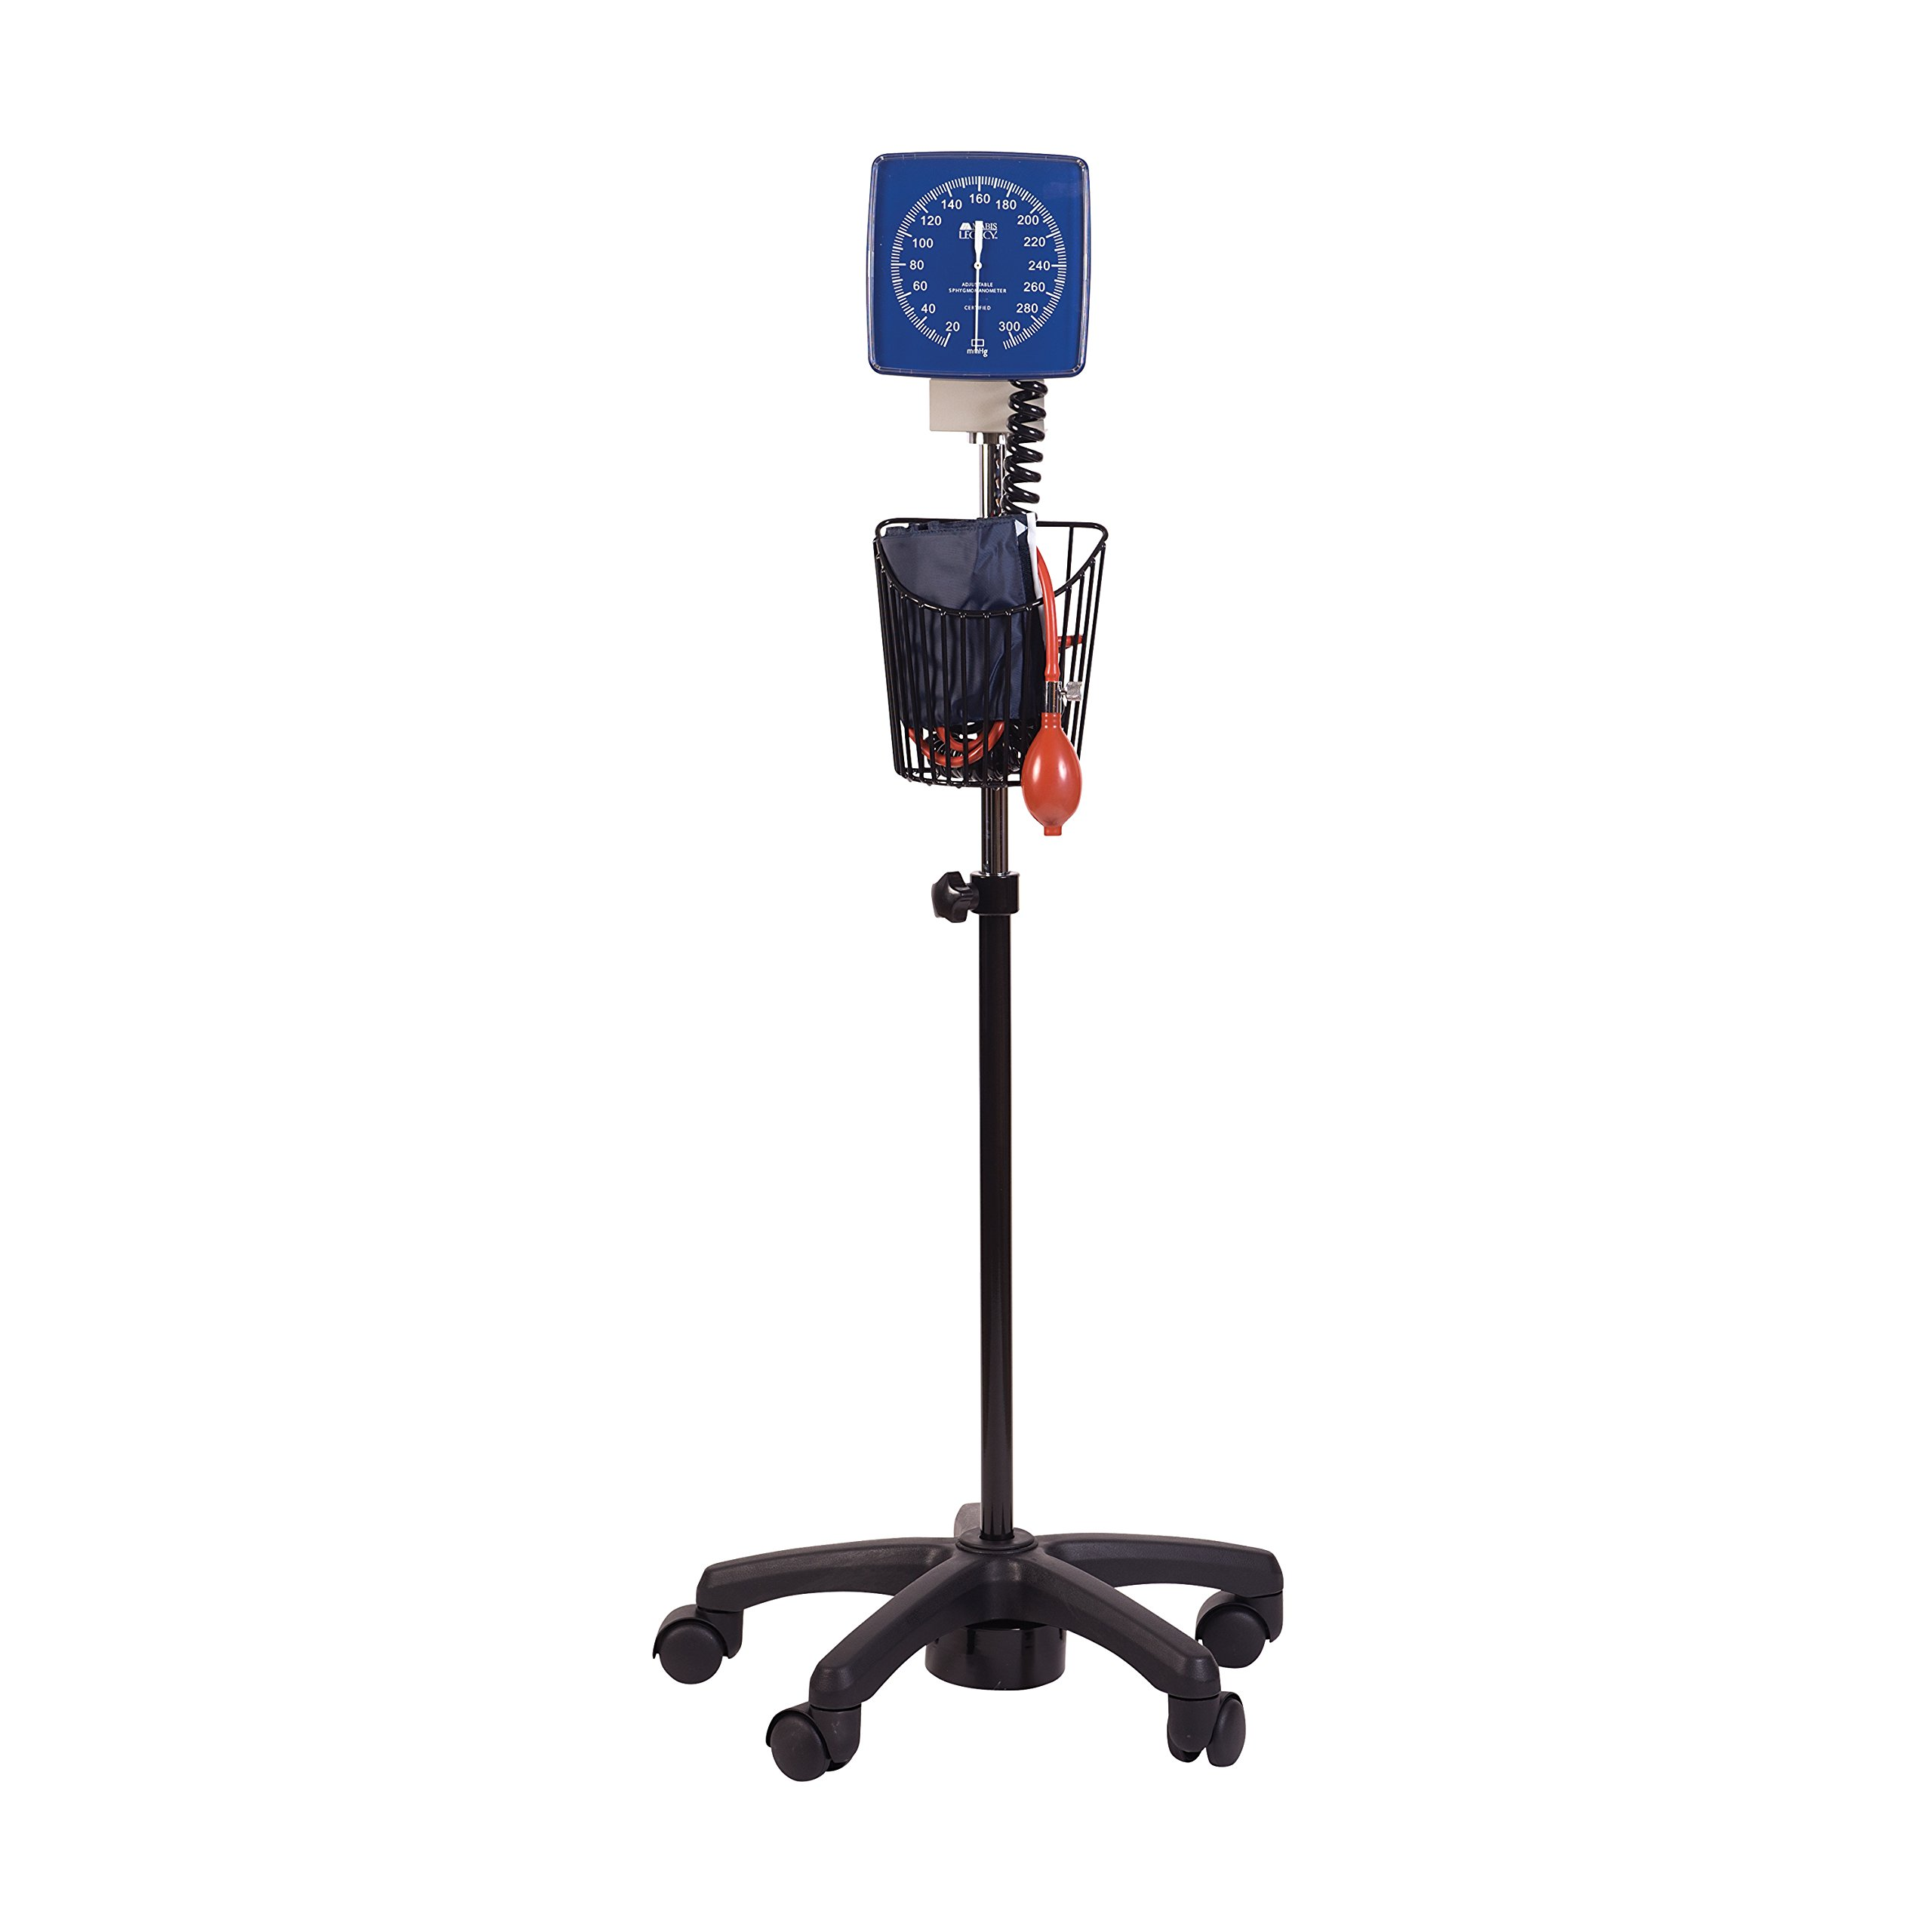 MABIS Legacy Professional Clock Aneroid Sphygmomanometer Blood Pressure Gauge with Adult Cuff, Rolling Stand, Wall Mounting Bracket, Blue